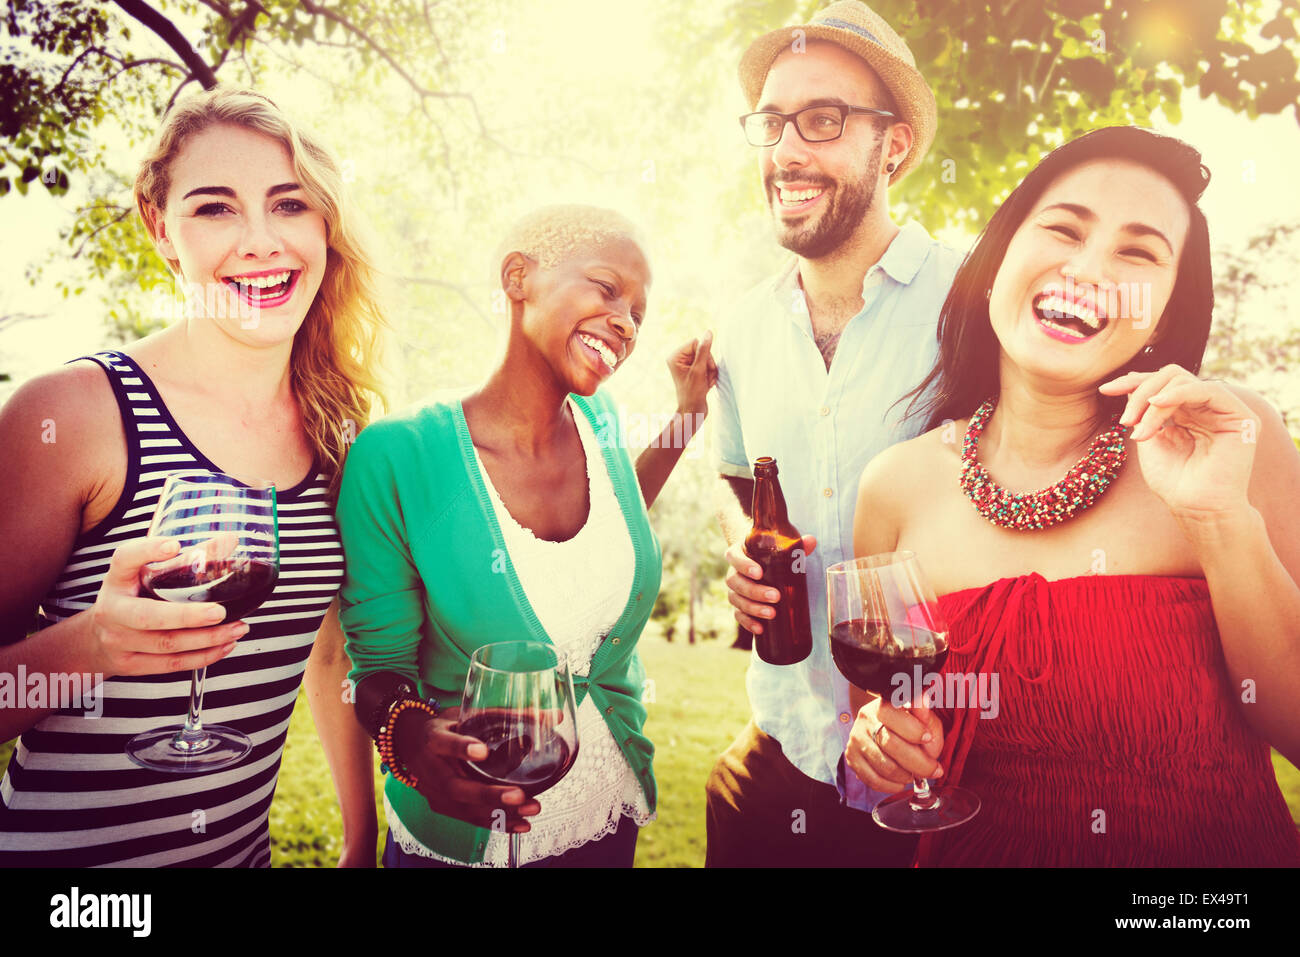 Friends Outdoors Party Celebration Hanging out Concept - Stock Image